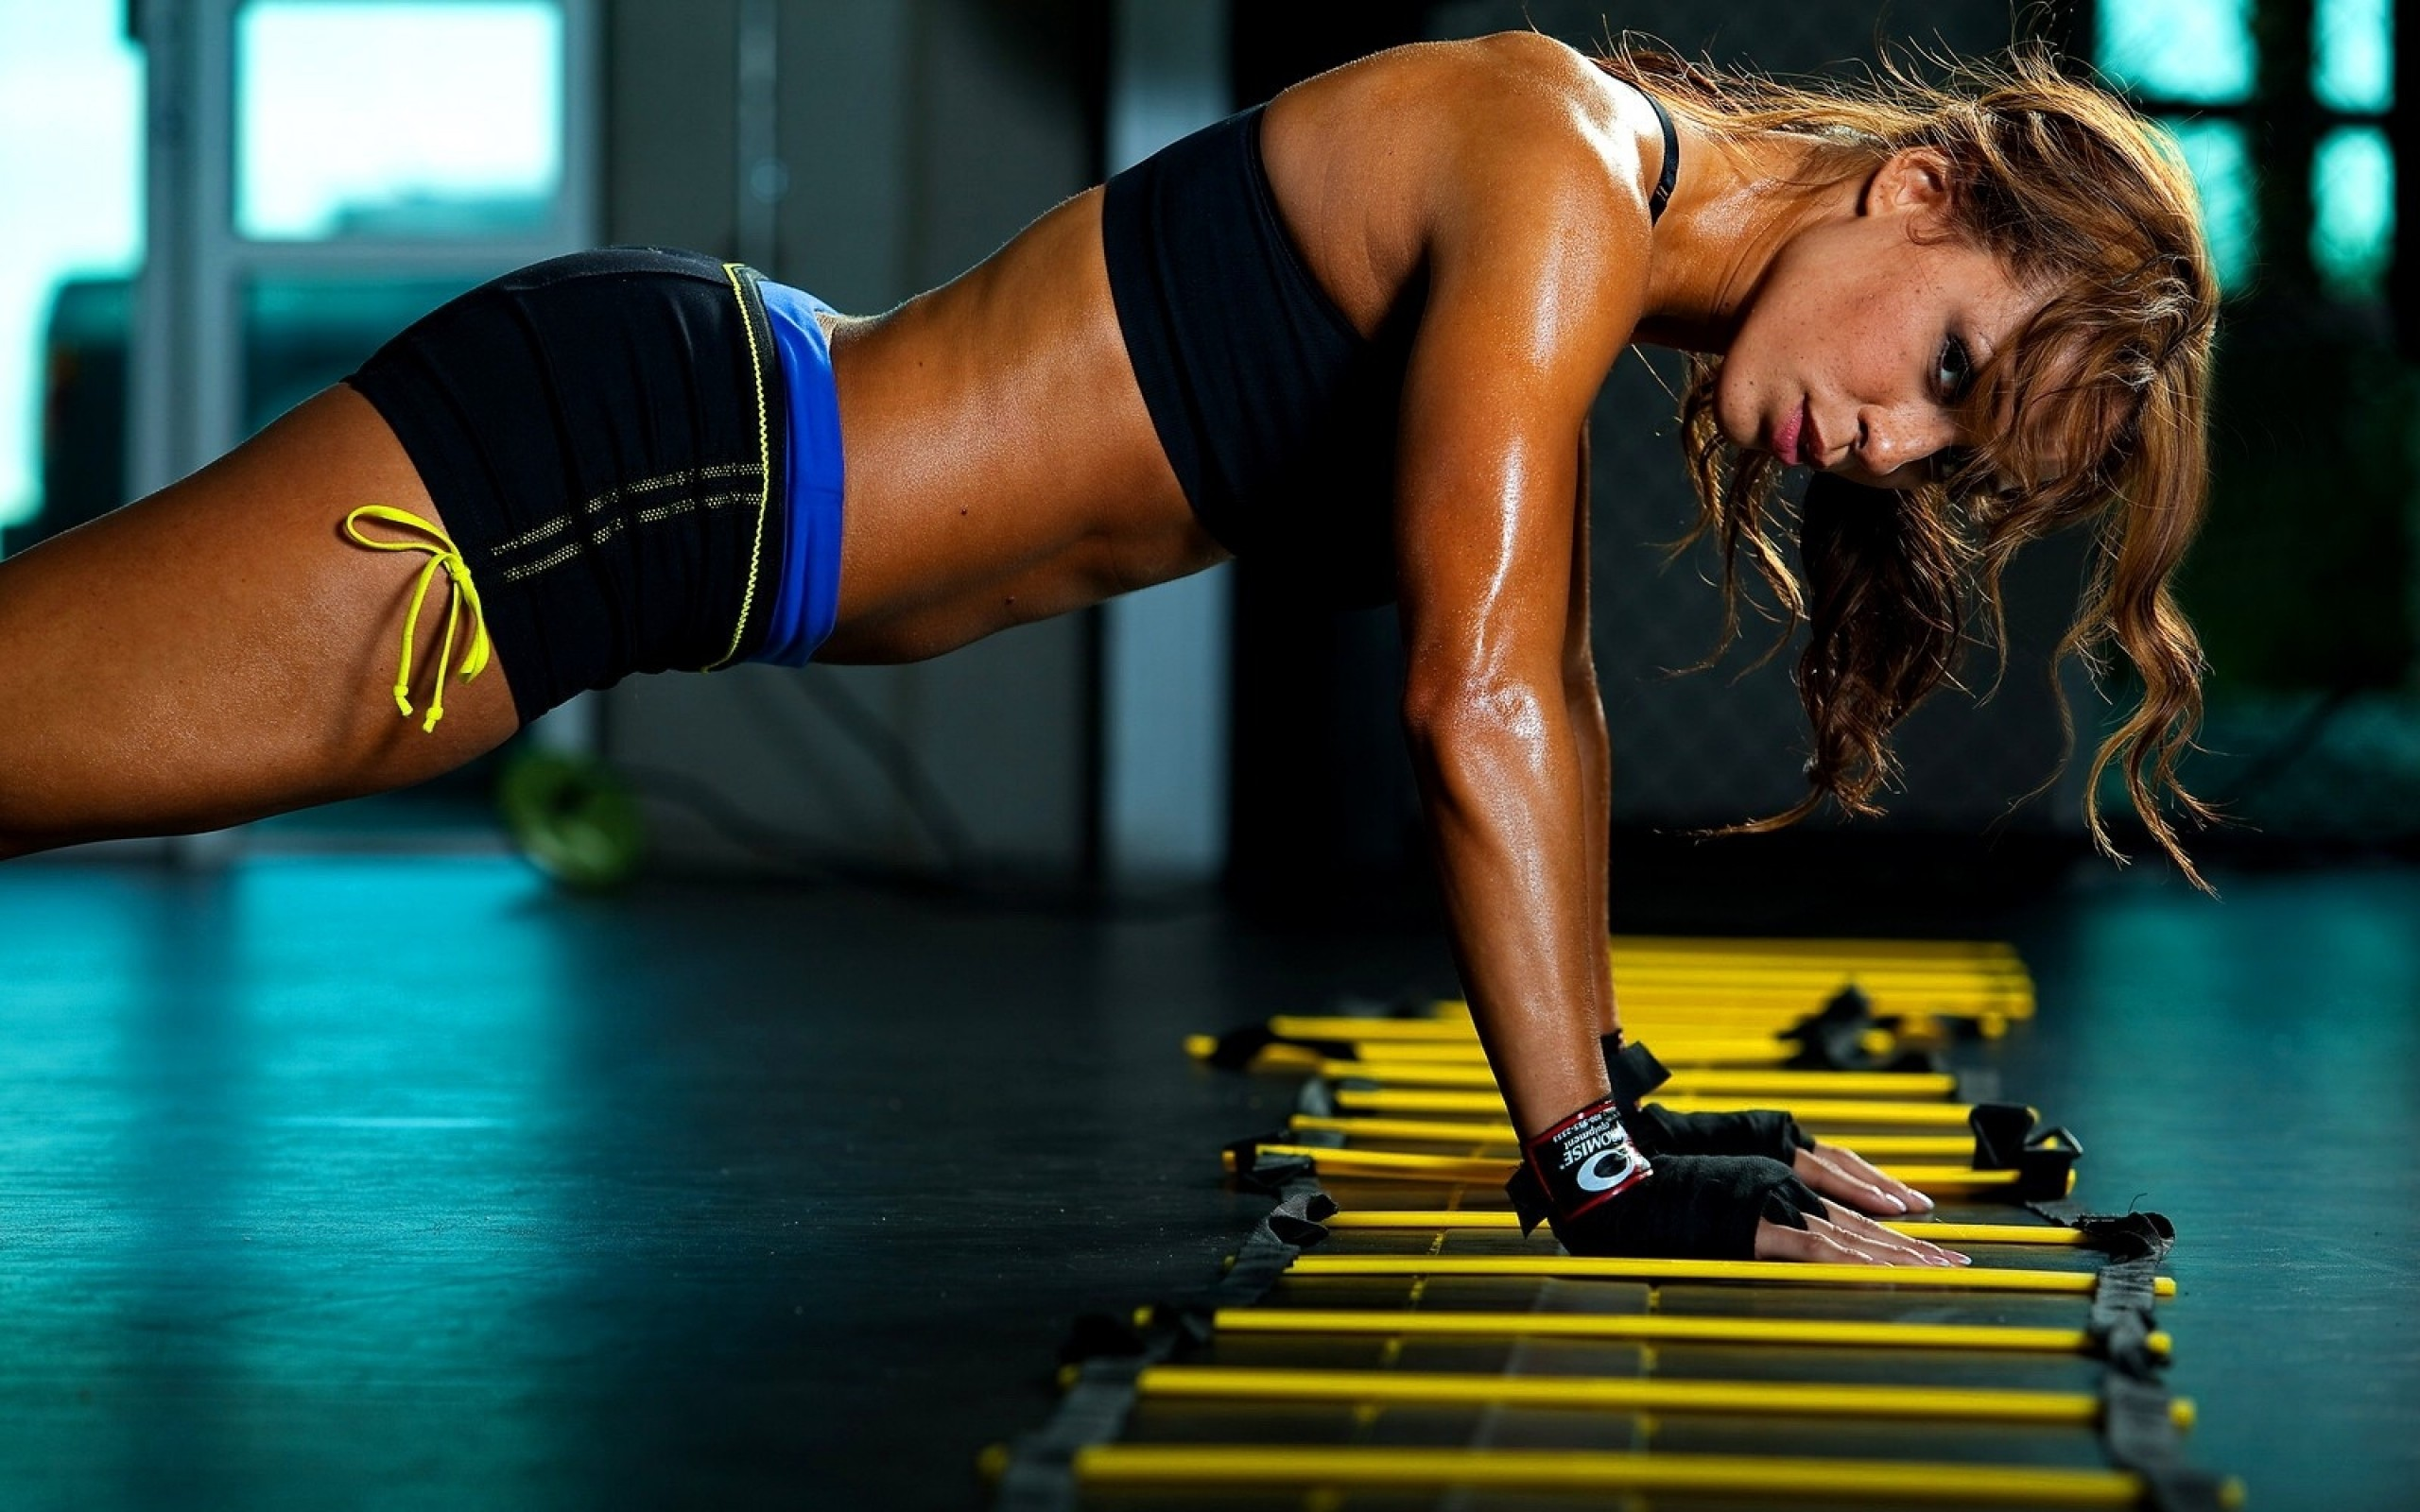 Boot Camp – Fit For Women Gym – Only $14.99 Womens Health & Fitness Centre